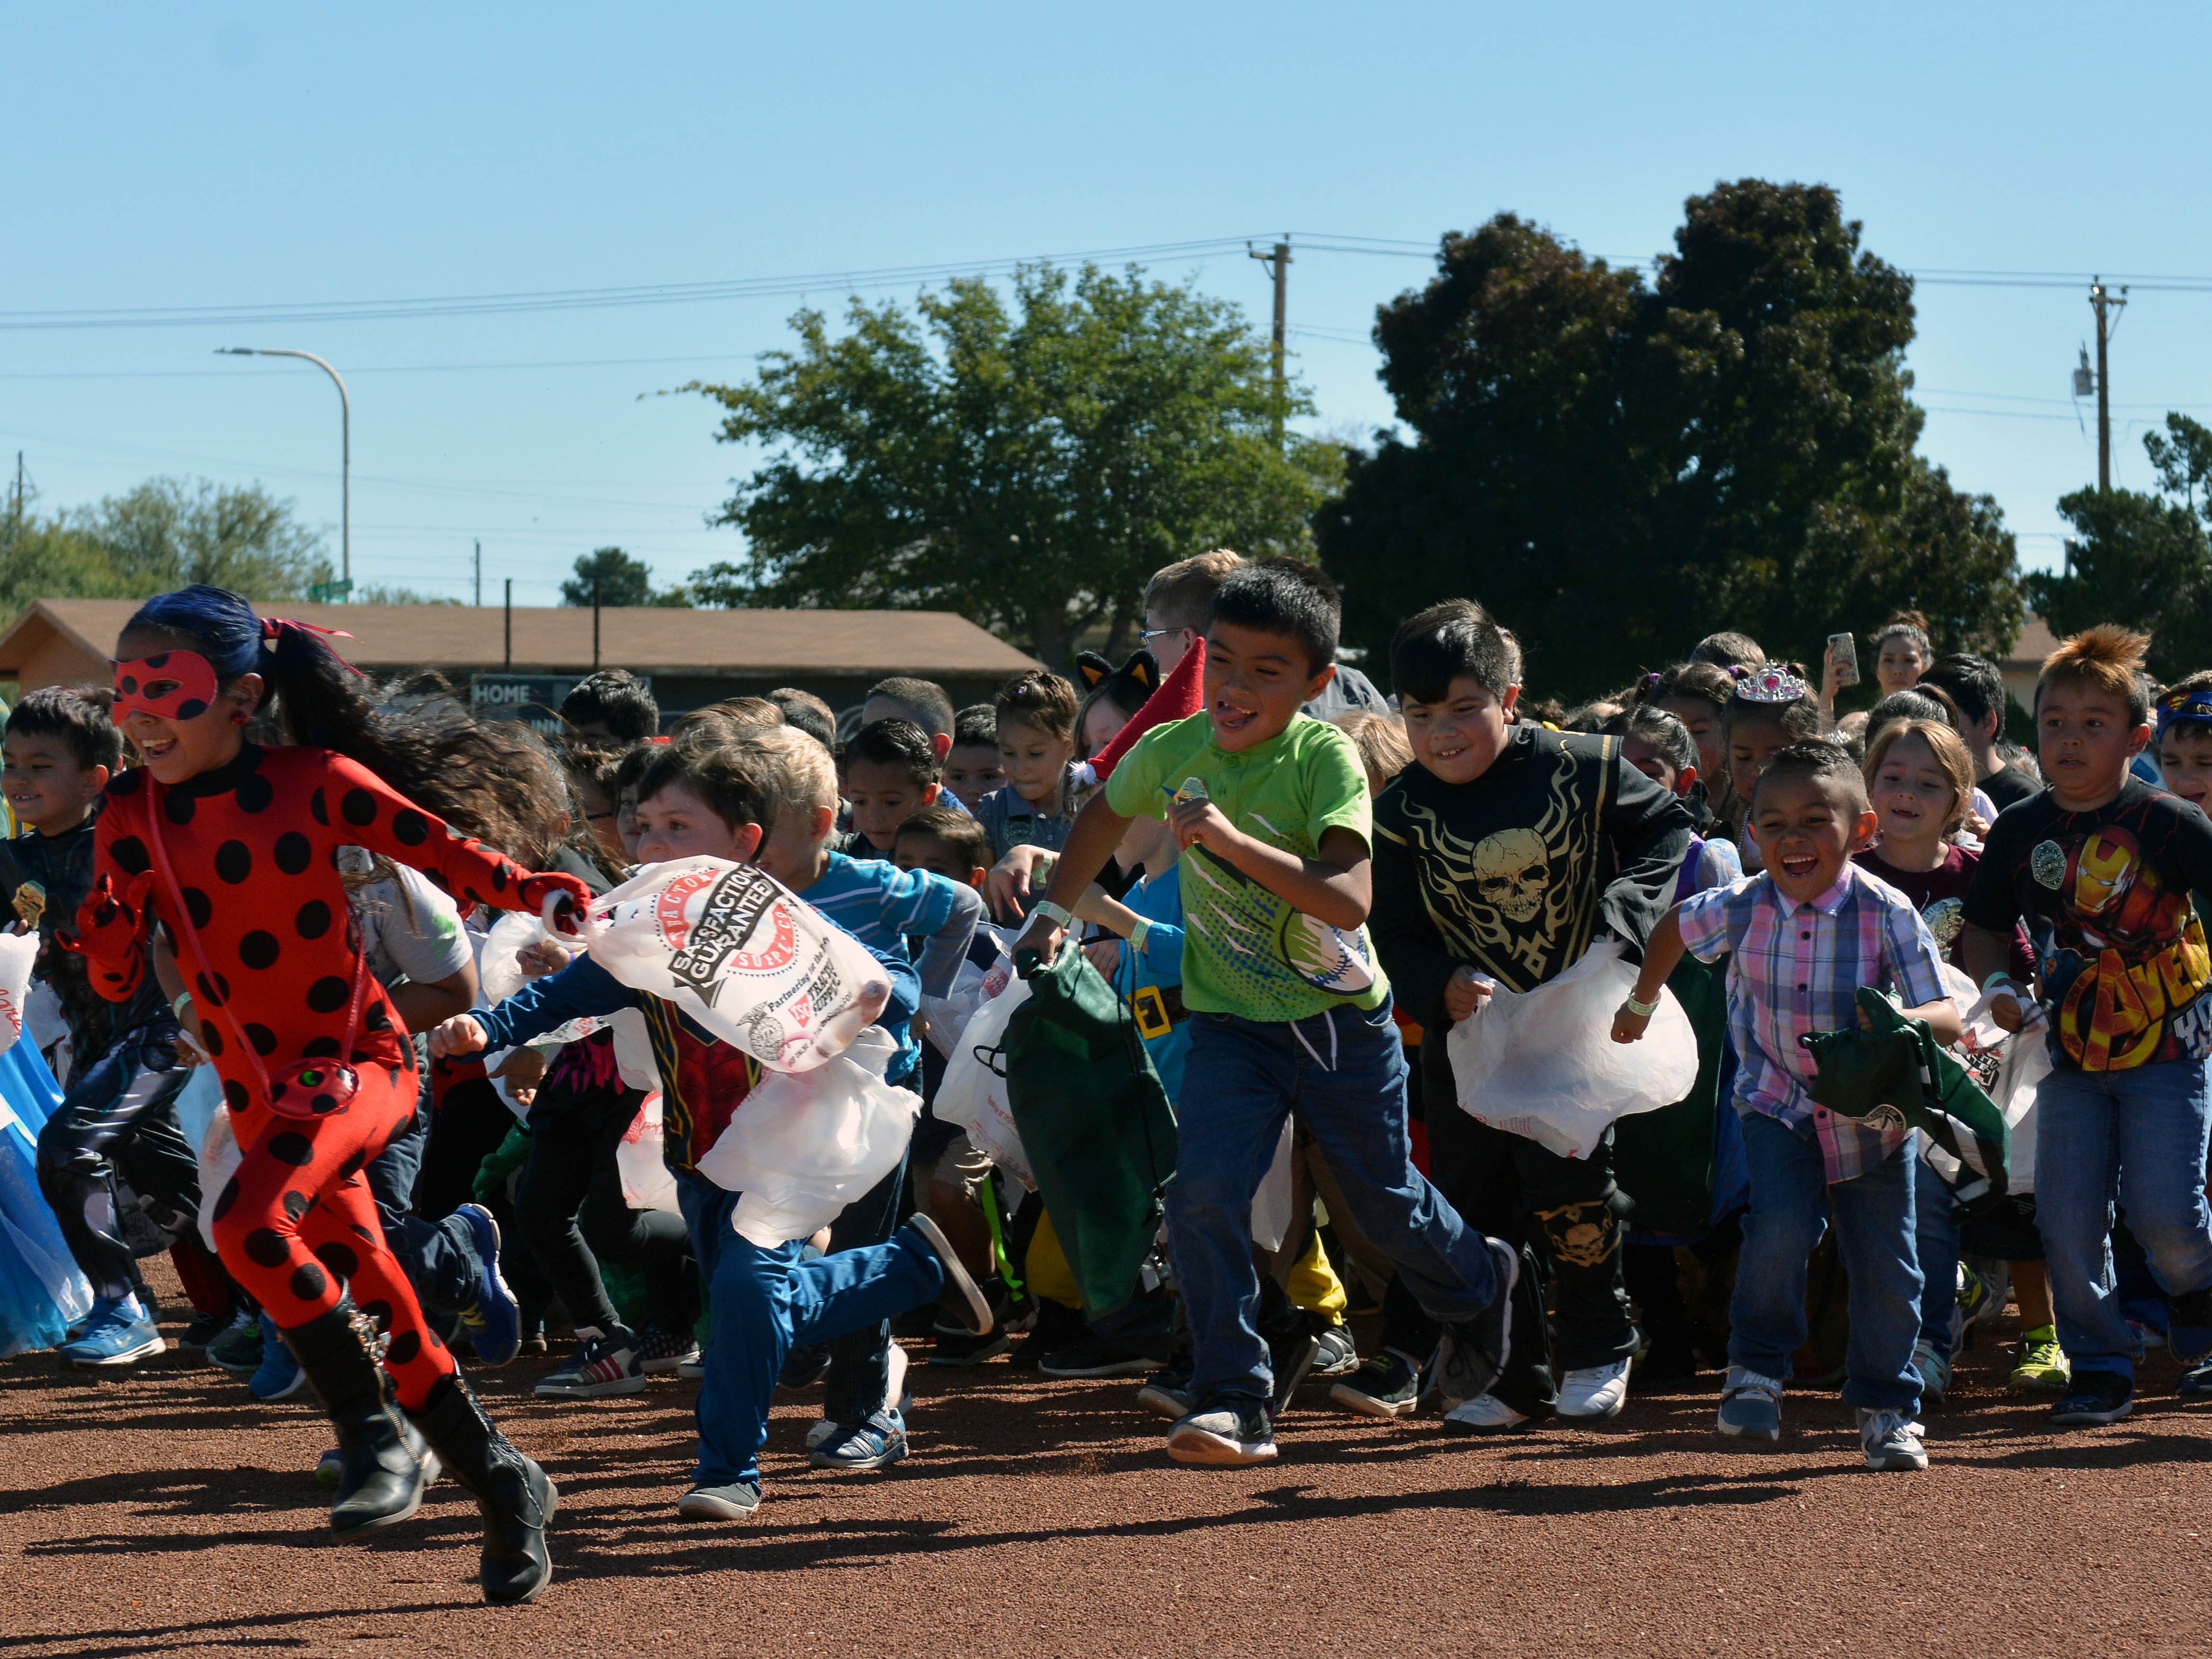 The first group of children makes a dash to the candy dropped during the 14th annual Great Pumpkin Candy Drop, held Sunday, Oct, 28 at Maag Park.